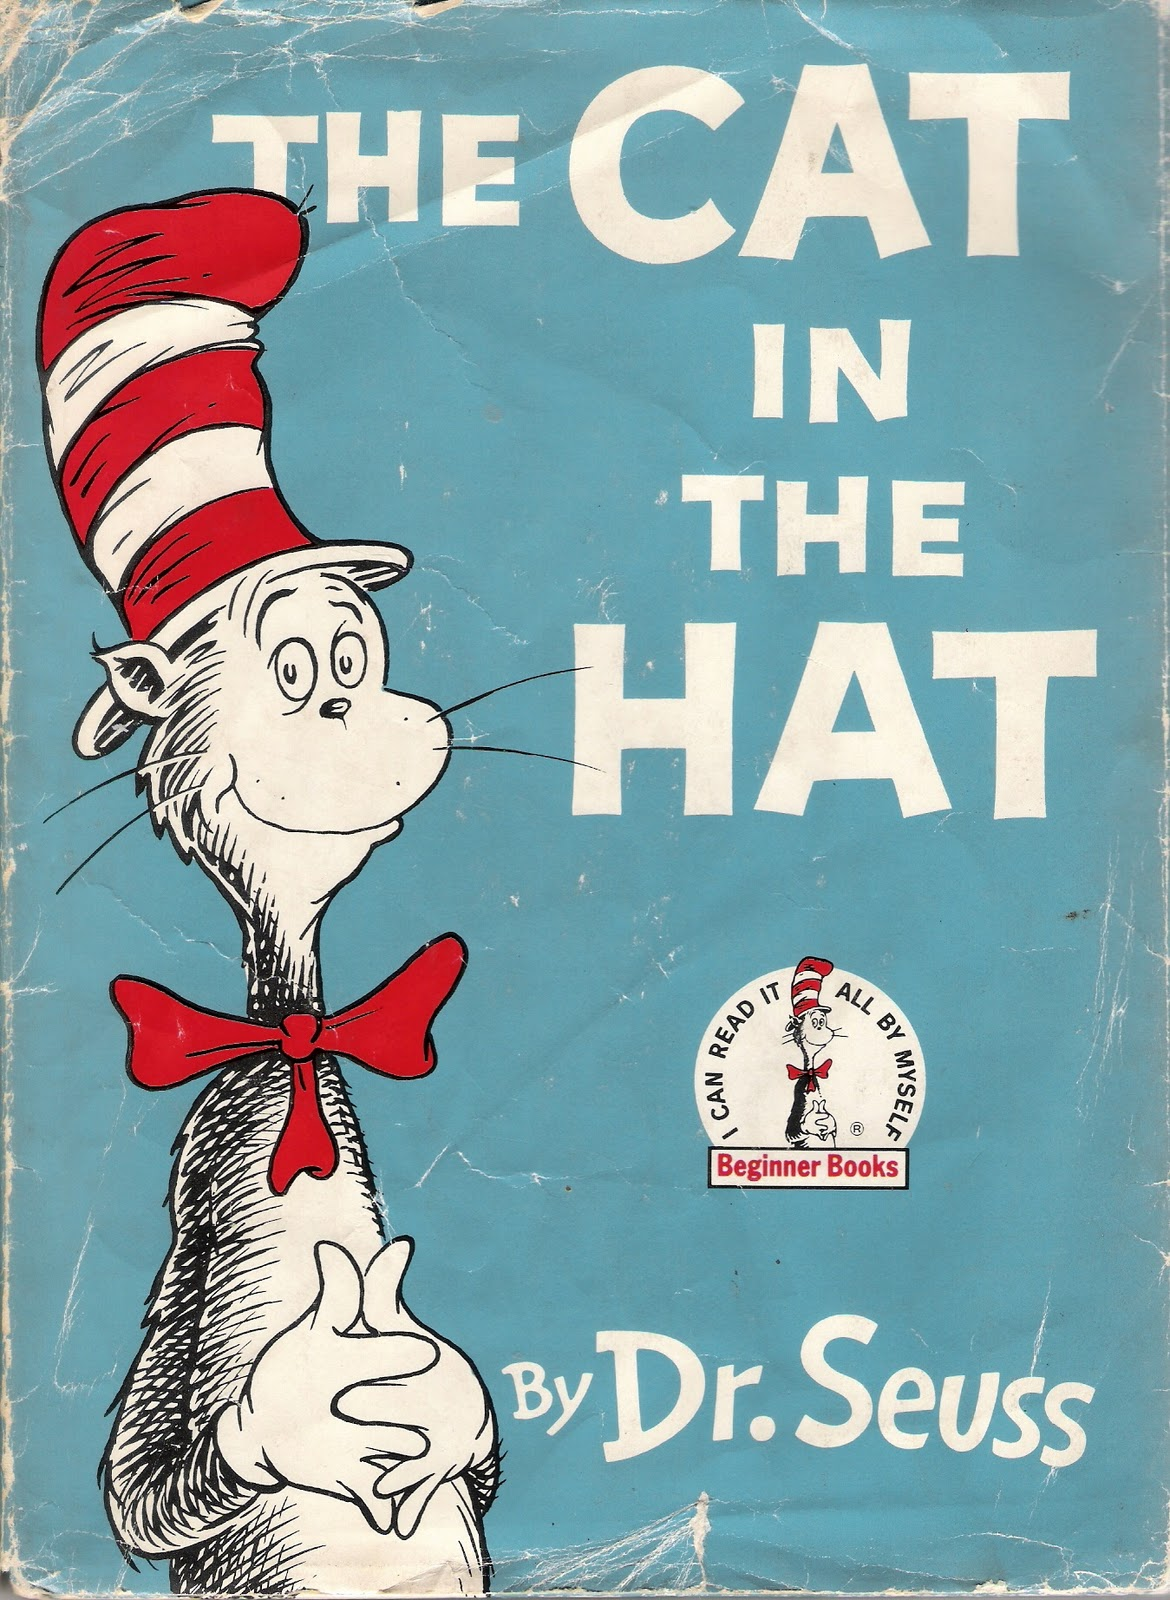 Bish Denham : C is for The Cat in the Hat